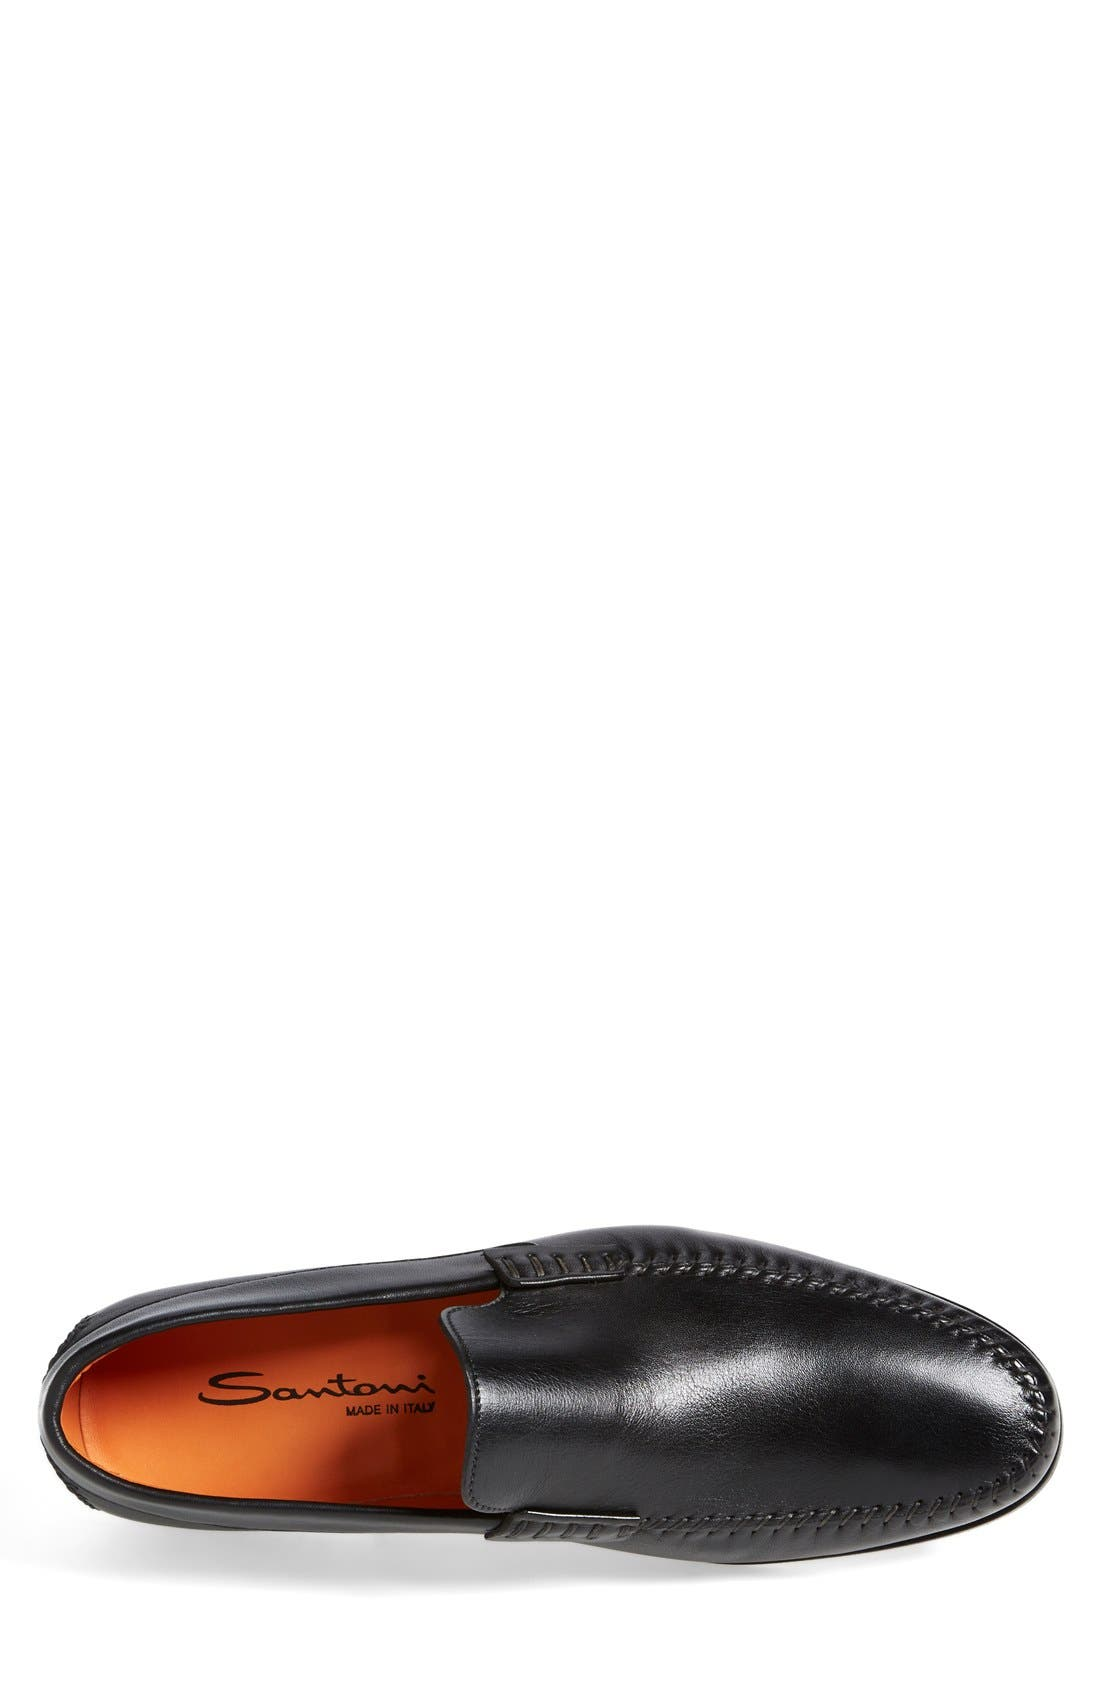 'Auburn' Venetian Loafer,                             Alternate thumbnail 5, color,